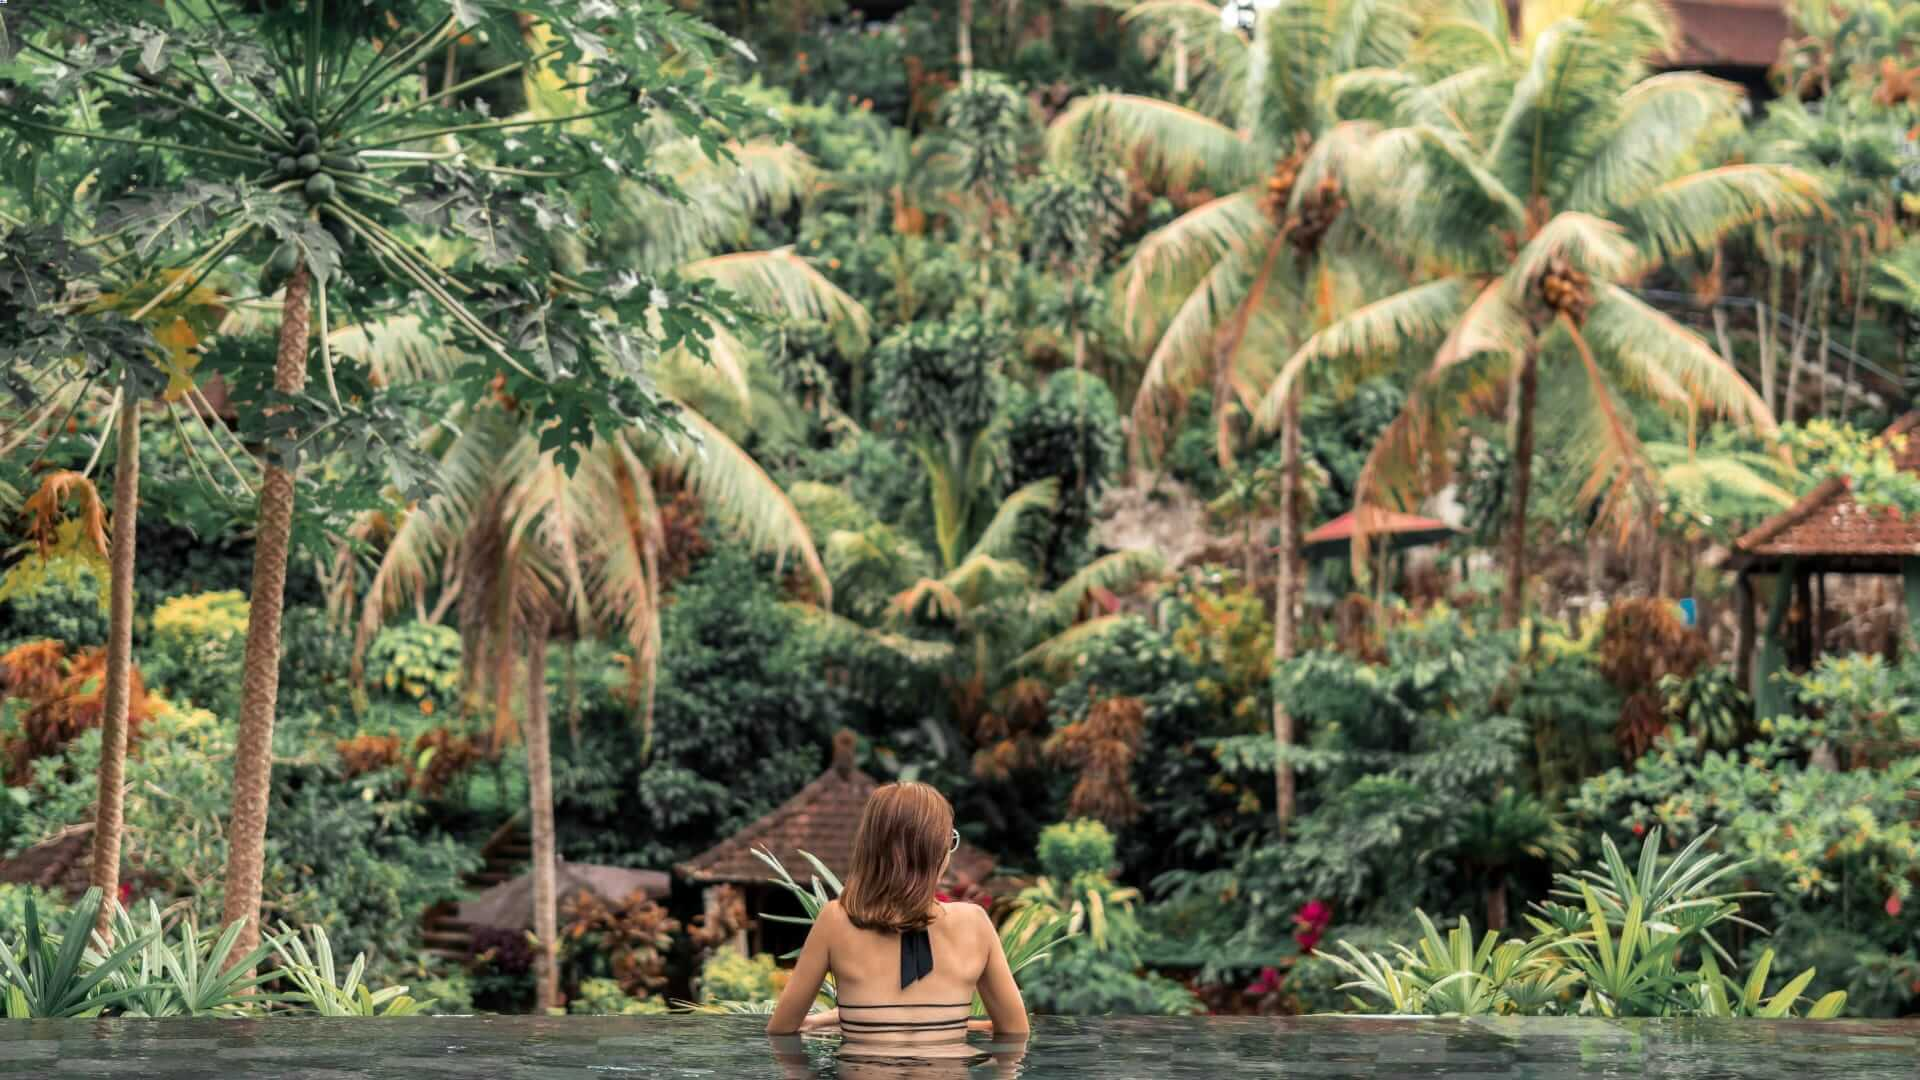 A person is sitting in a infinity pool and looking at green palm trees in Bali.